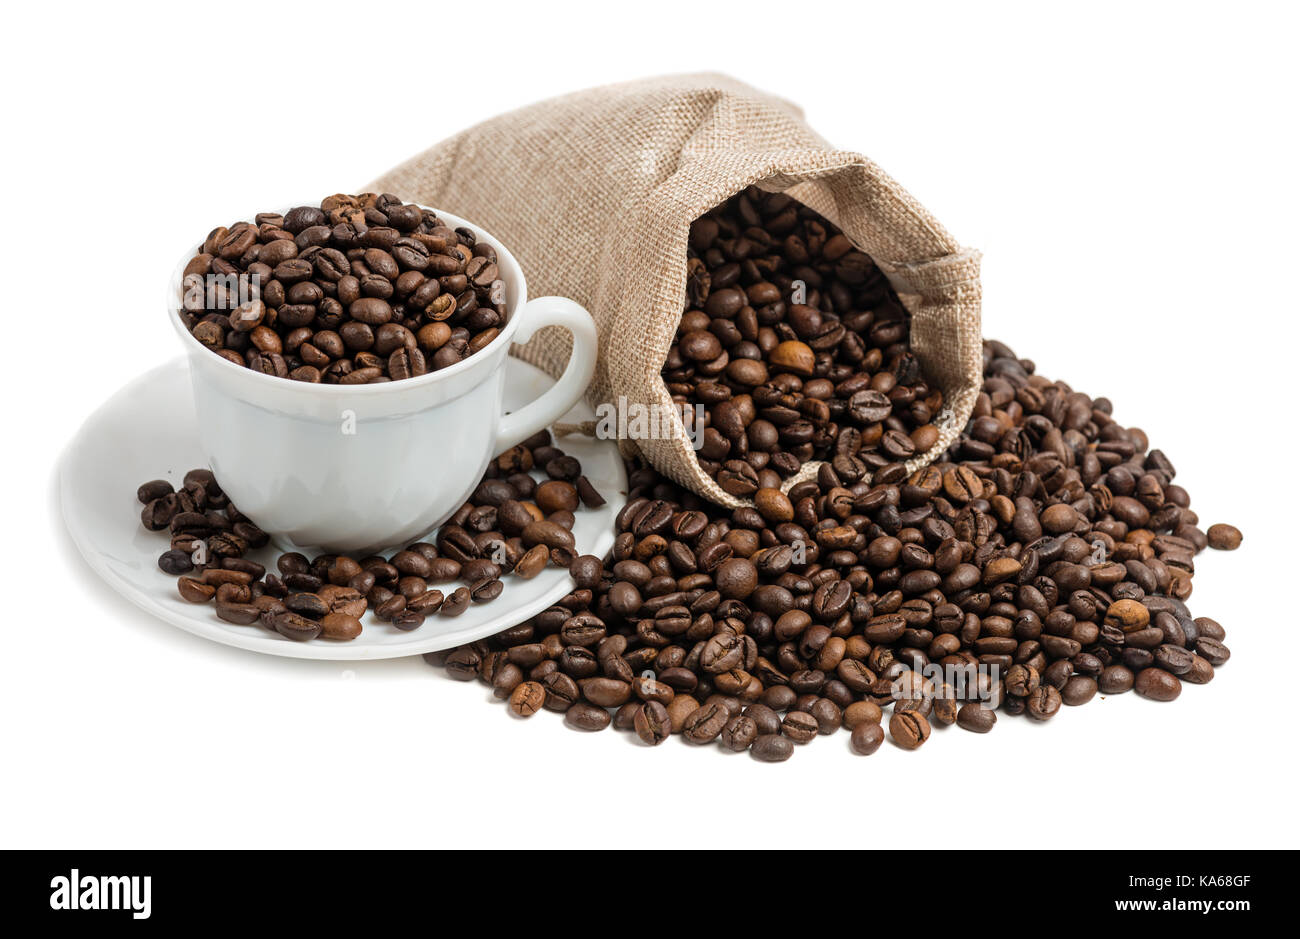 Coffee cup and beans on a white background - Stock Image